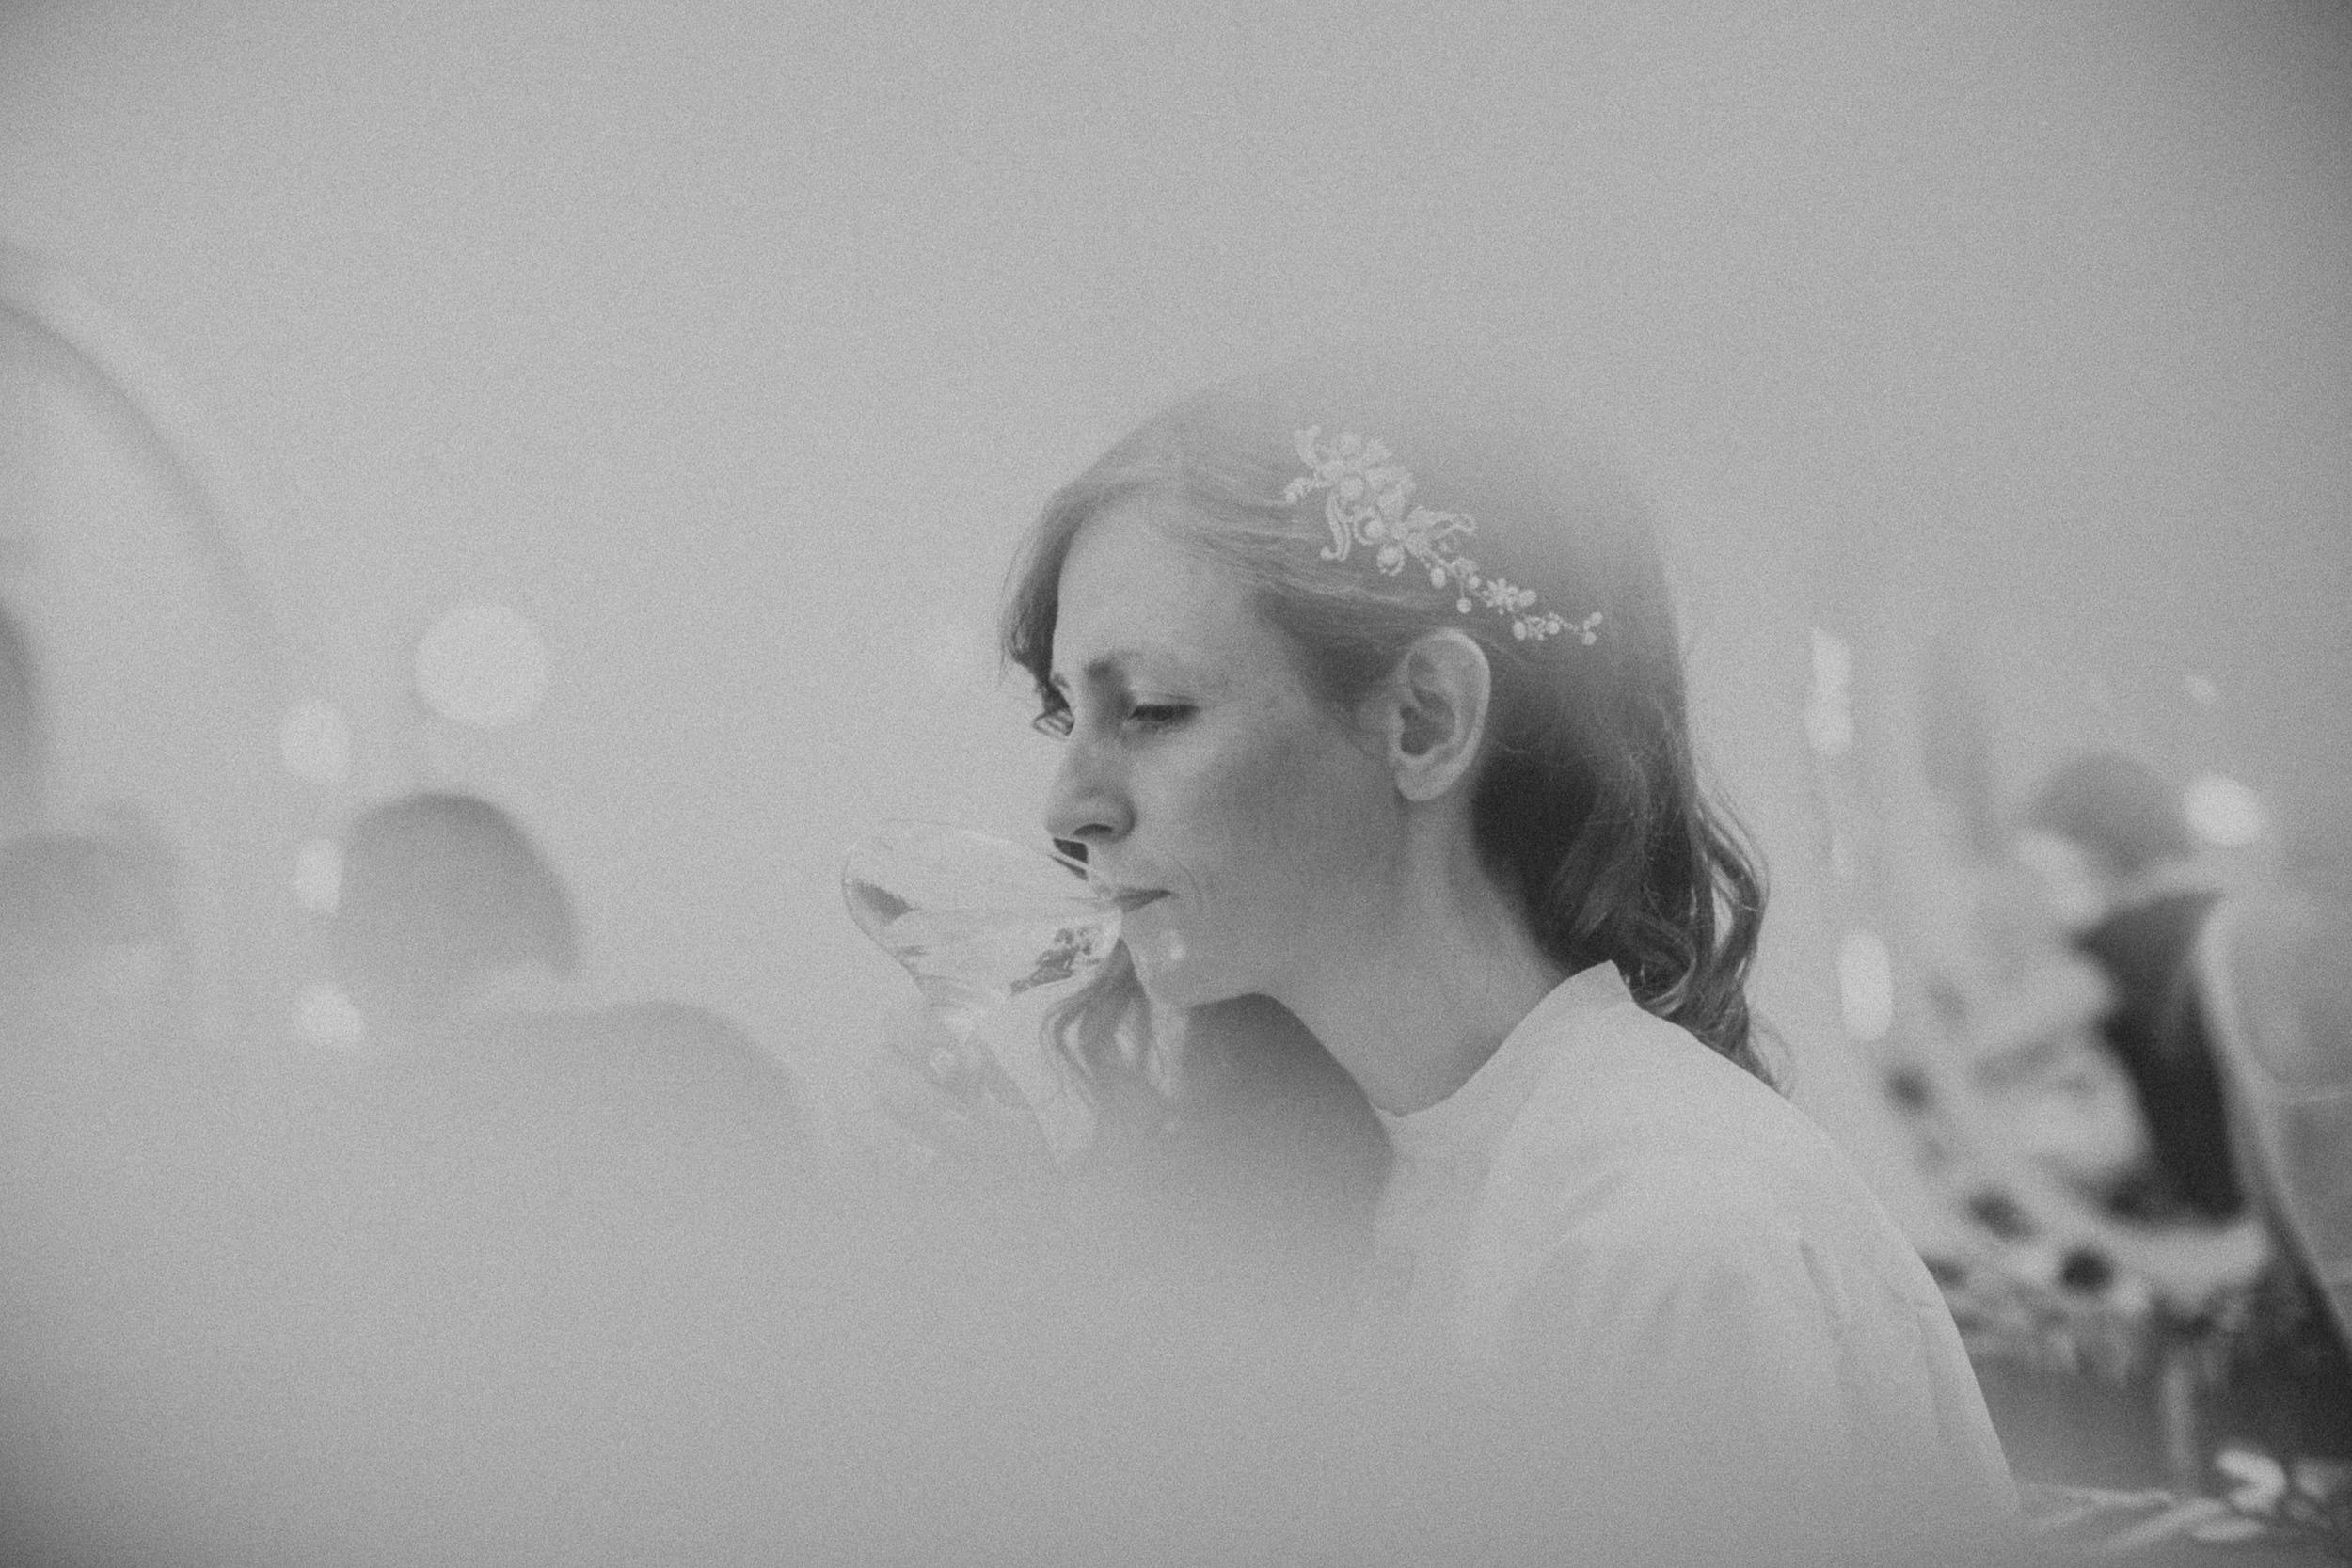 clairebyrnephotography-fun-wedding-photographer-ireland-creative-164.jpg